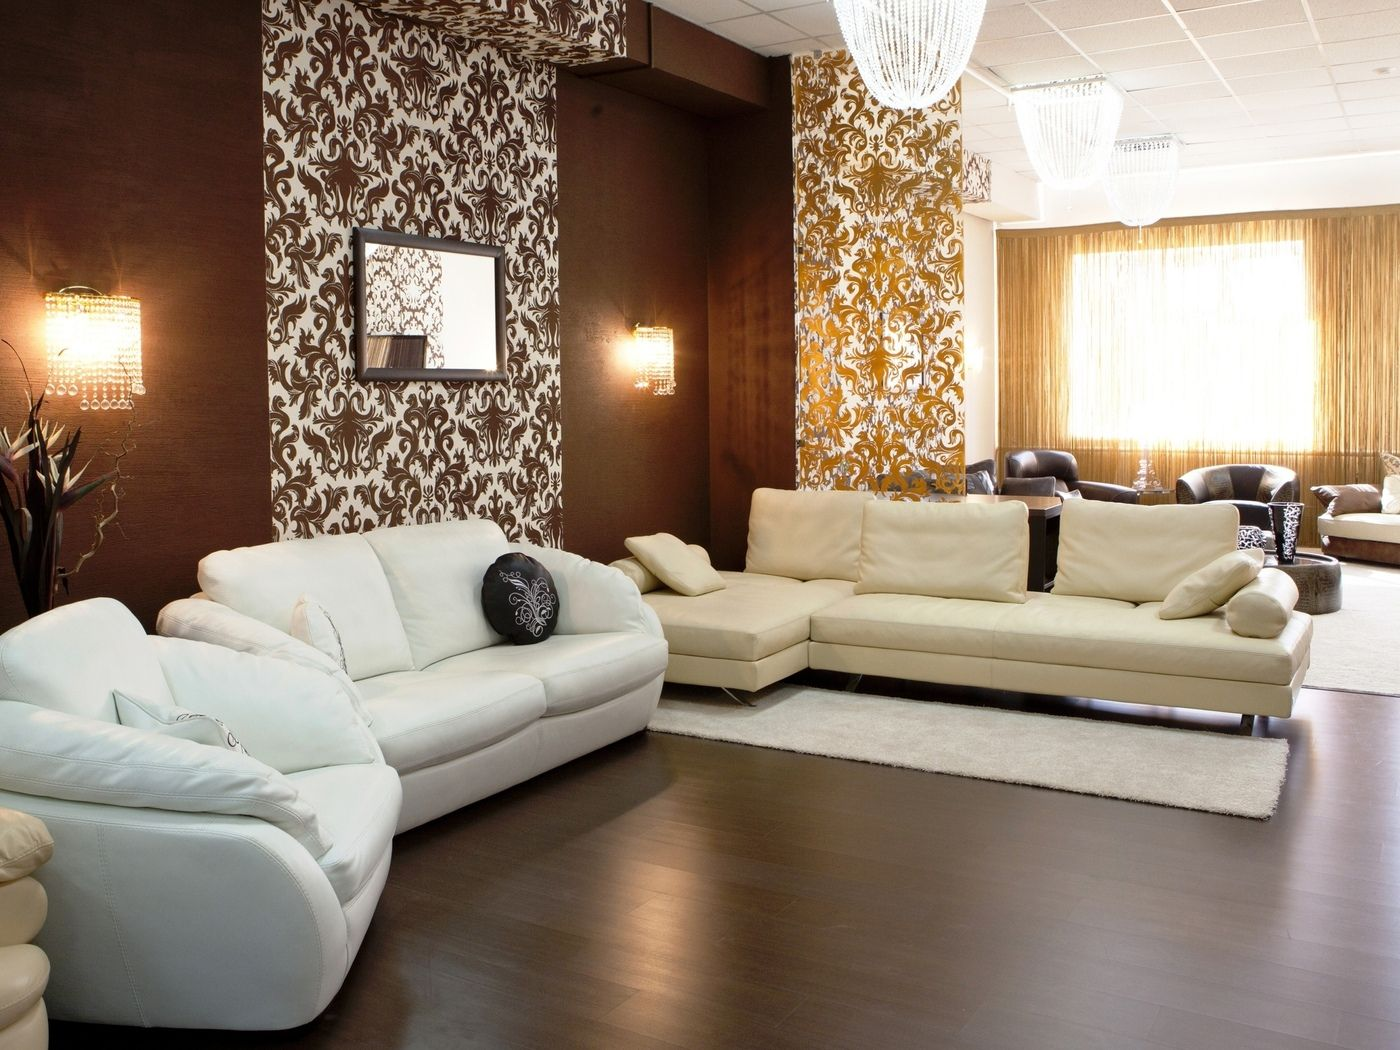 Dark pattern of the wallpaper and white leather sofas for living